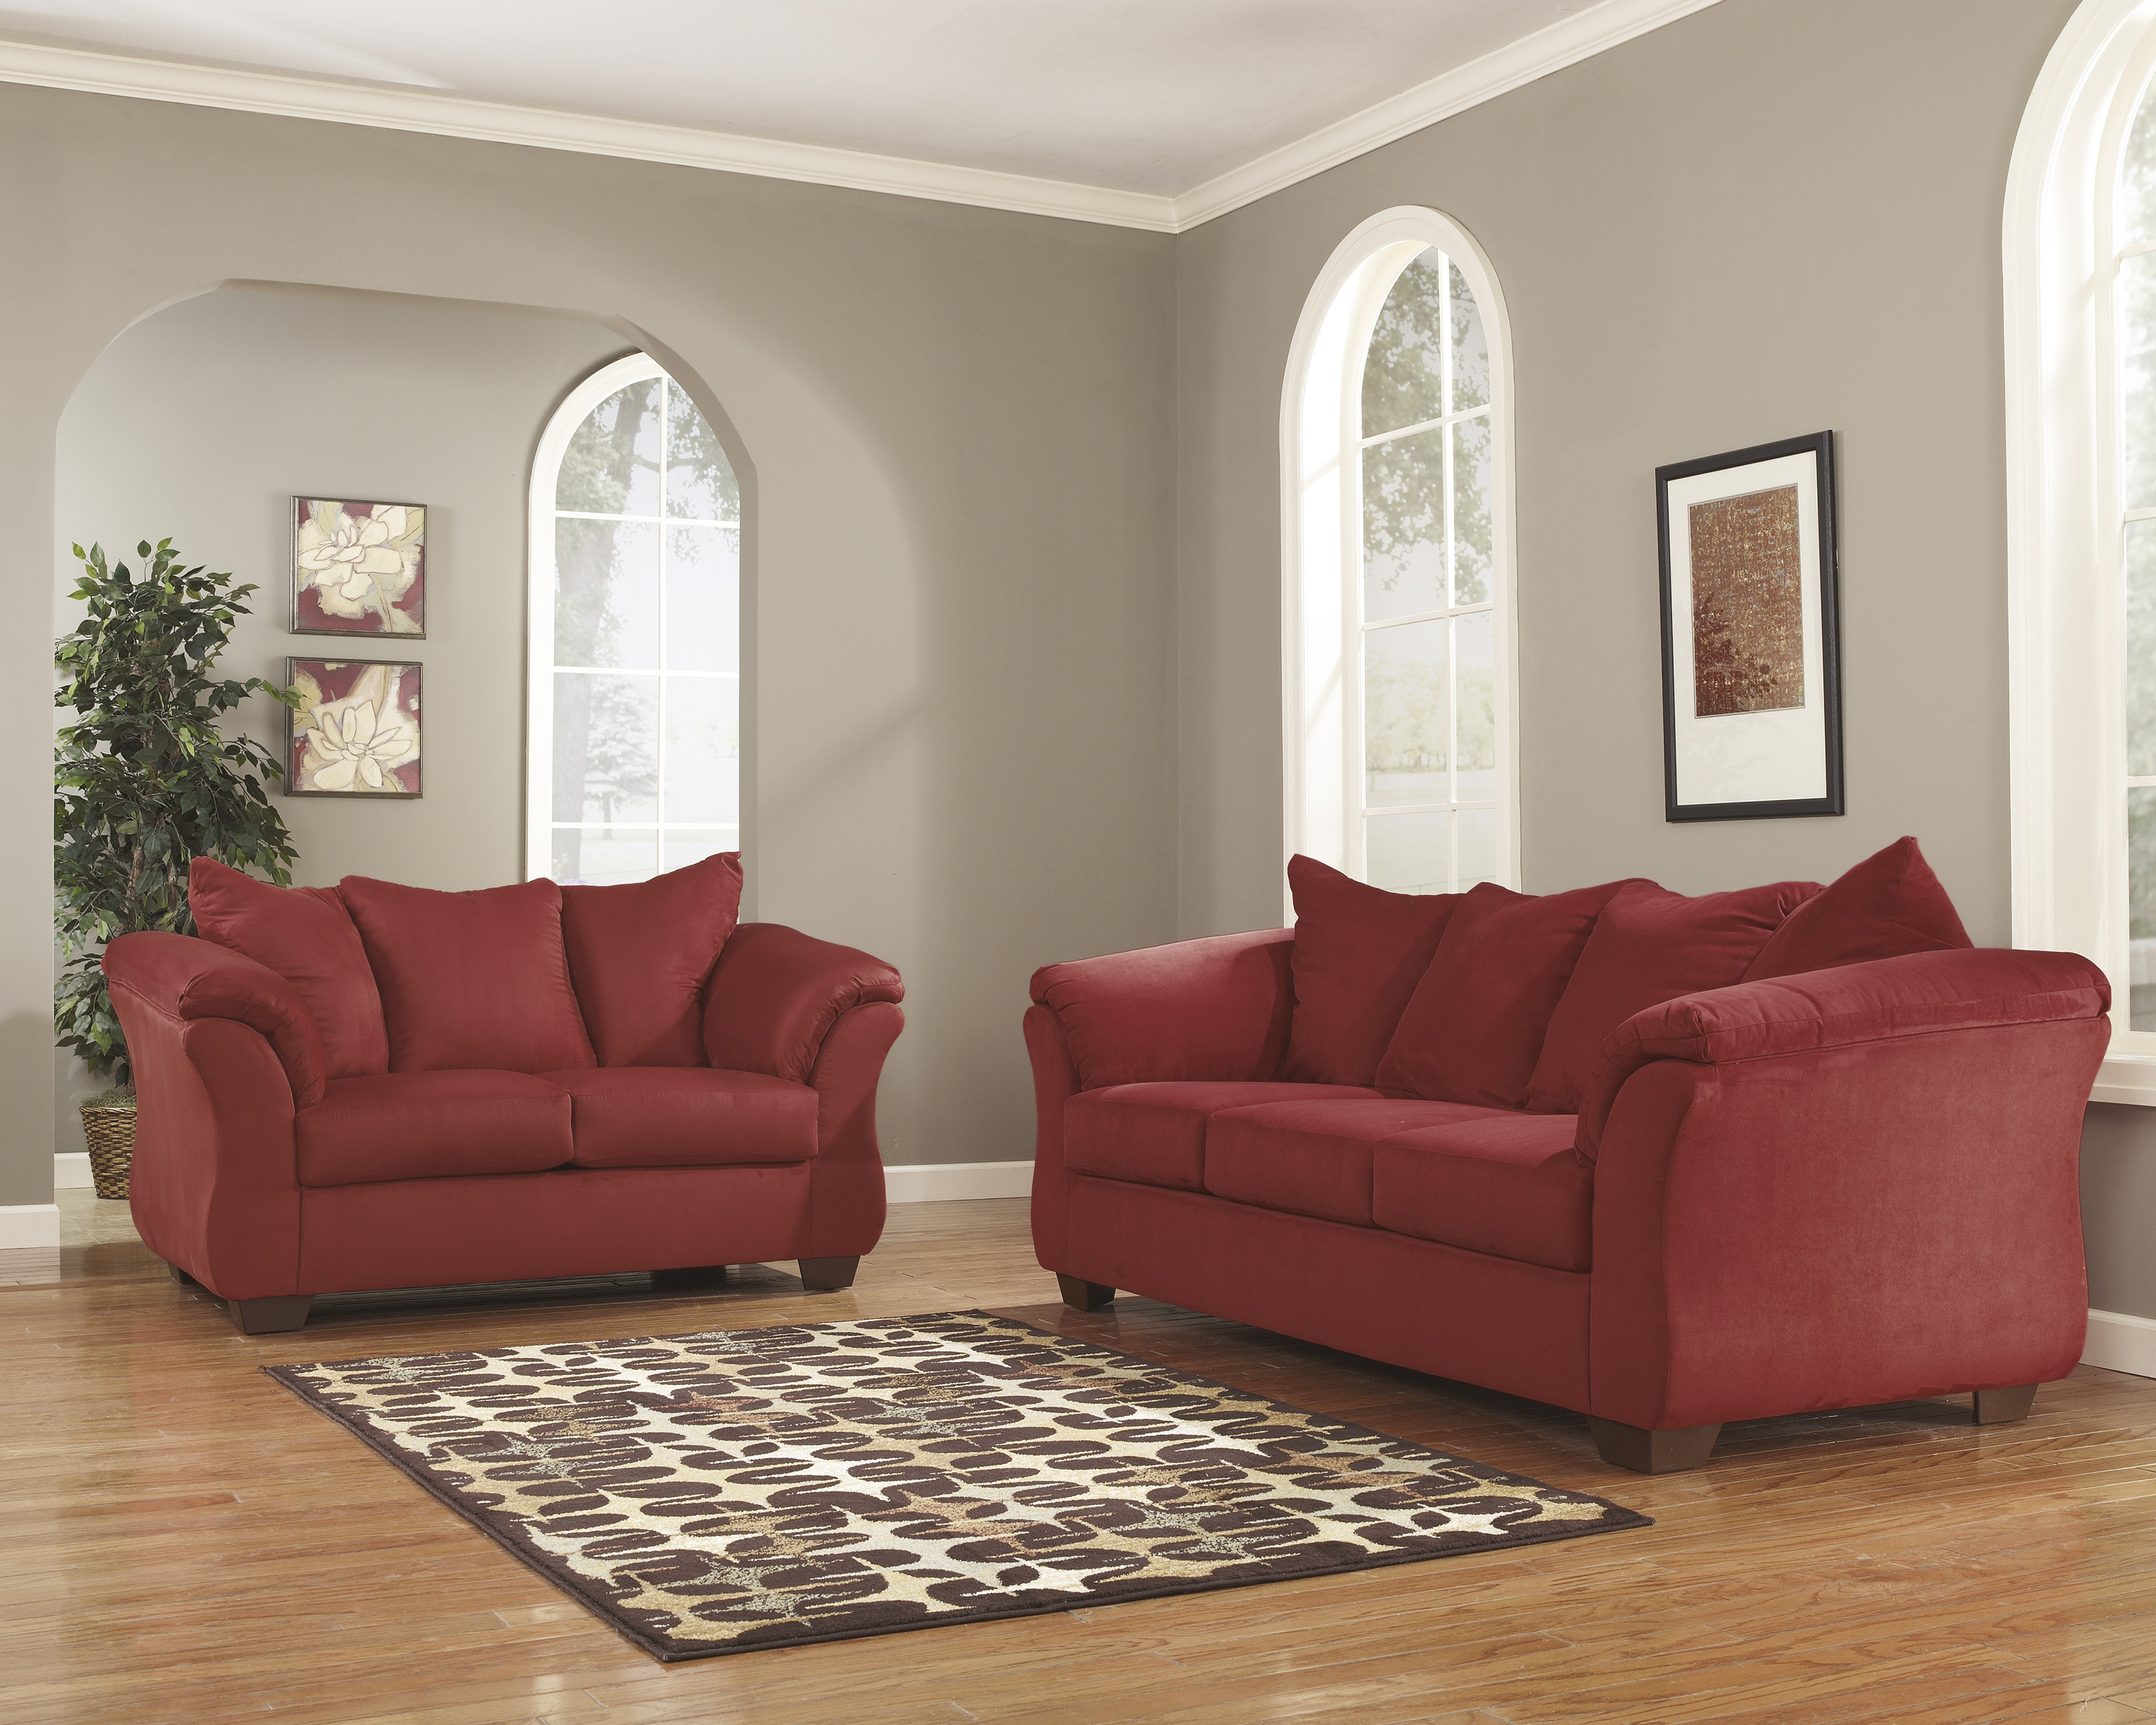 Darcy Salsa Sofa and Loveseat  / $21.99 A Week